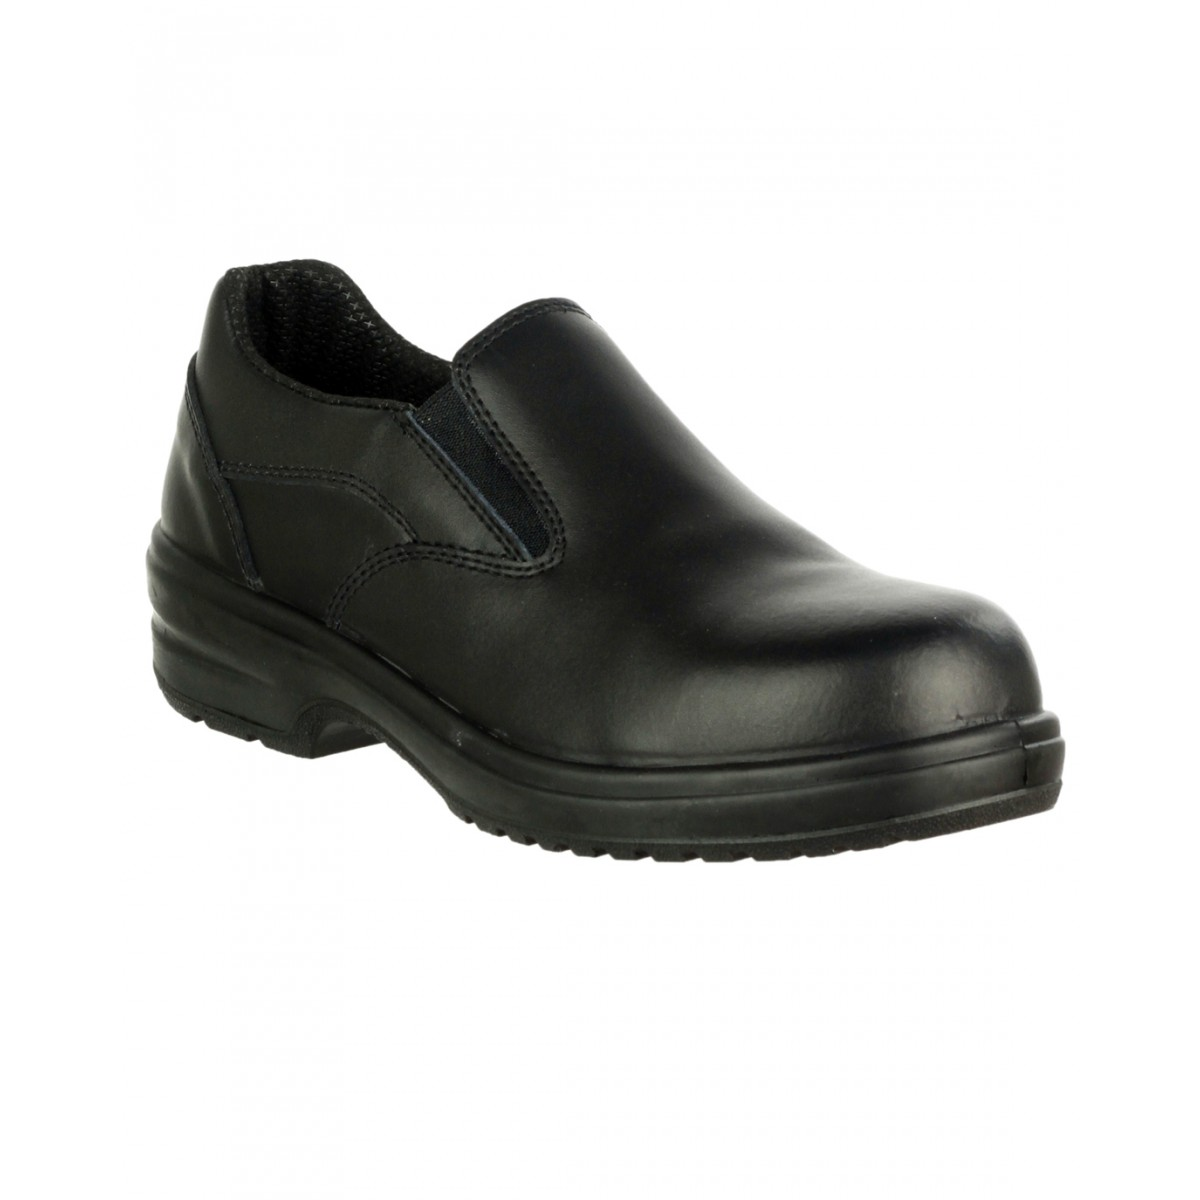 Womens Safety Shoes Size